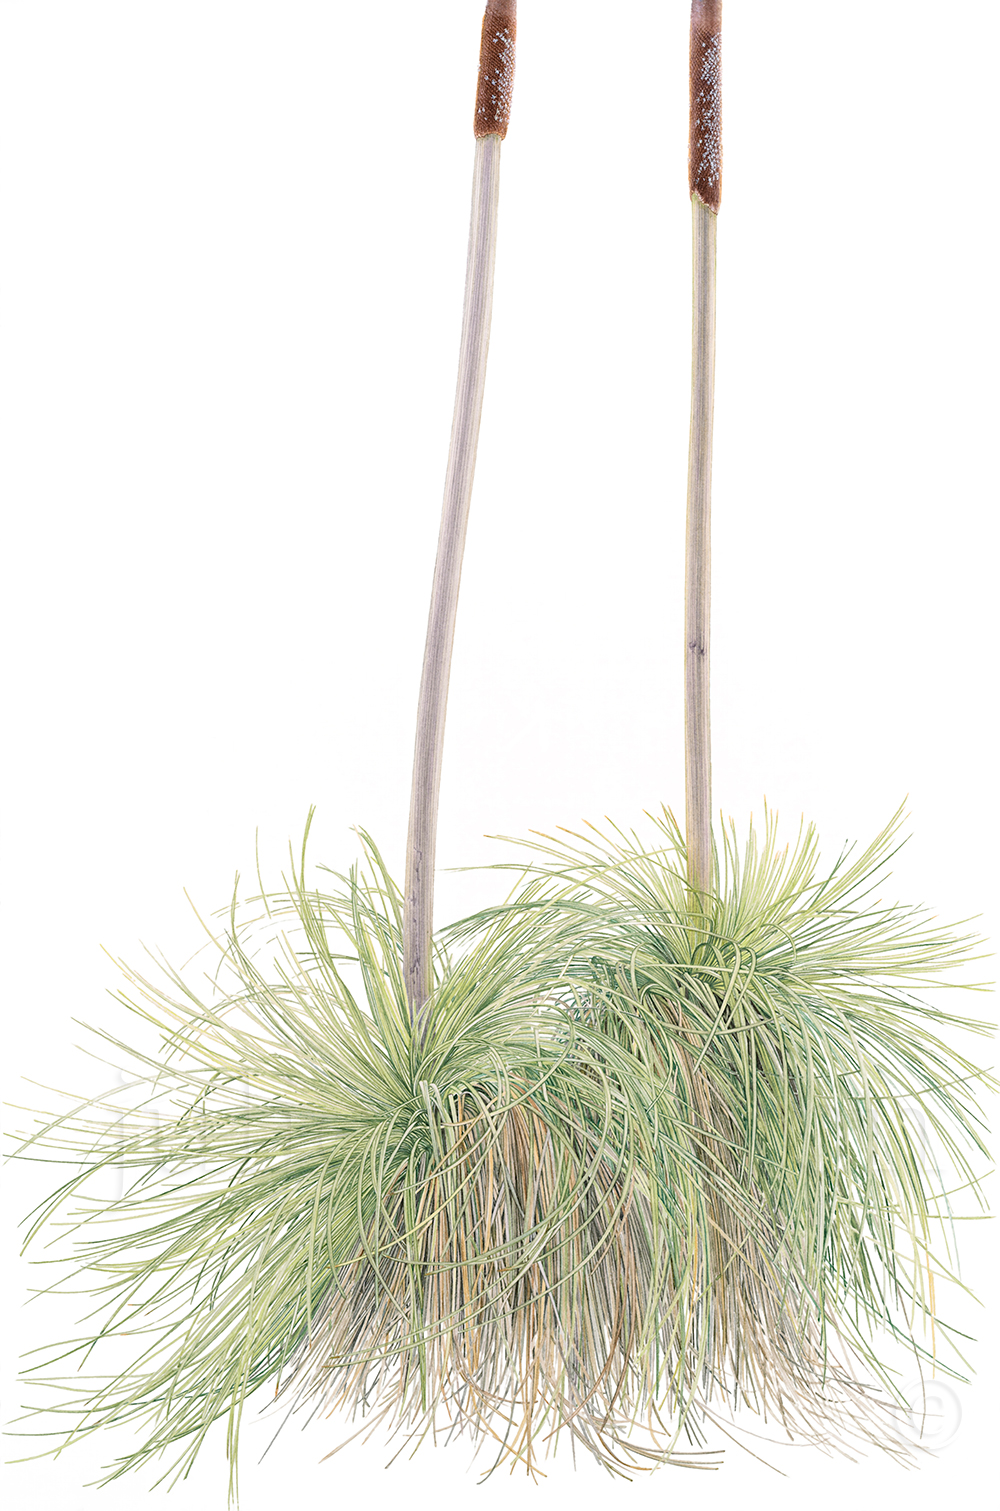 Xanthorrhoea-resinosa-Grass-Tree-with-Branched-Trunk